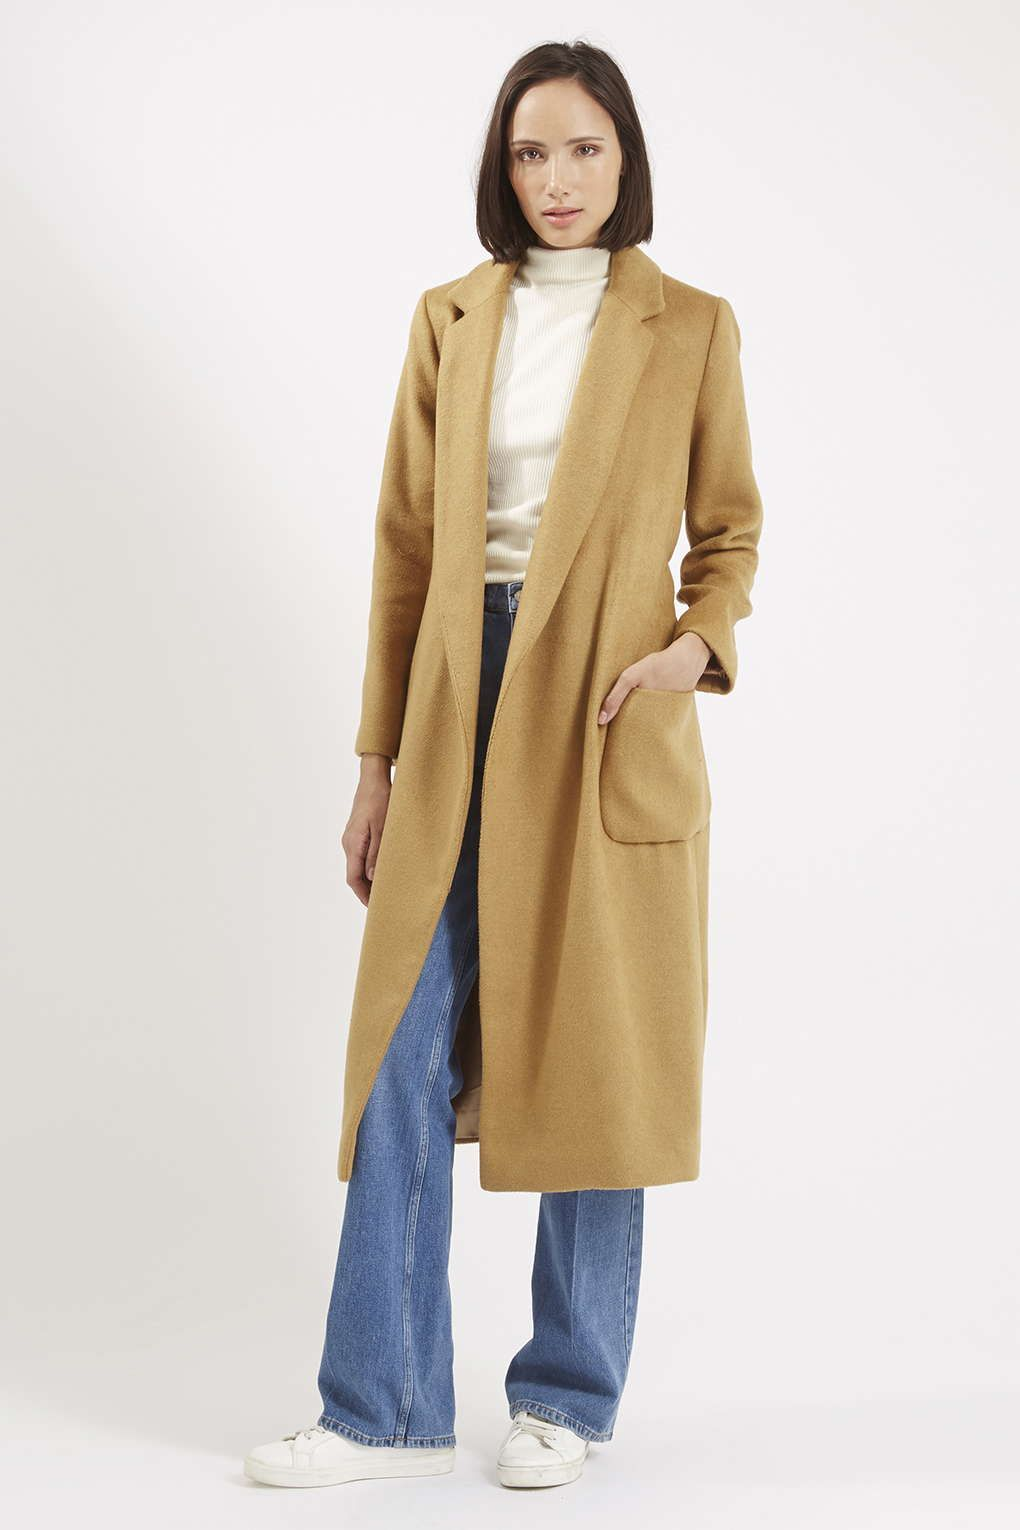 Belted Wool Blend Coat - Coats - Clothing - Topshop | flared jeans ...